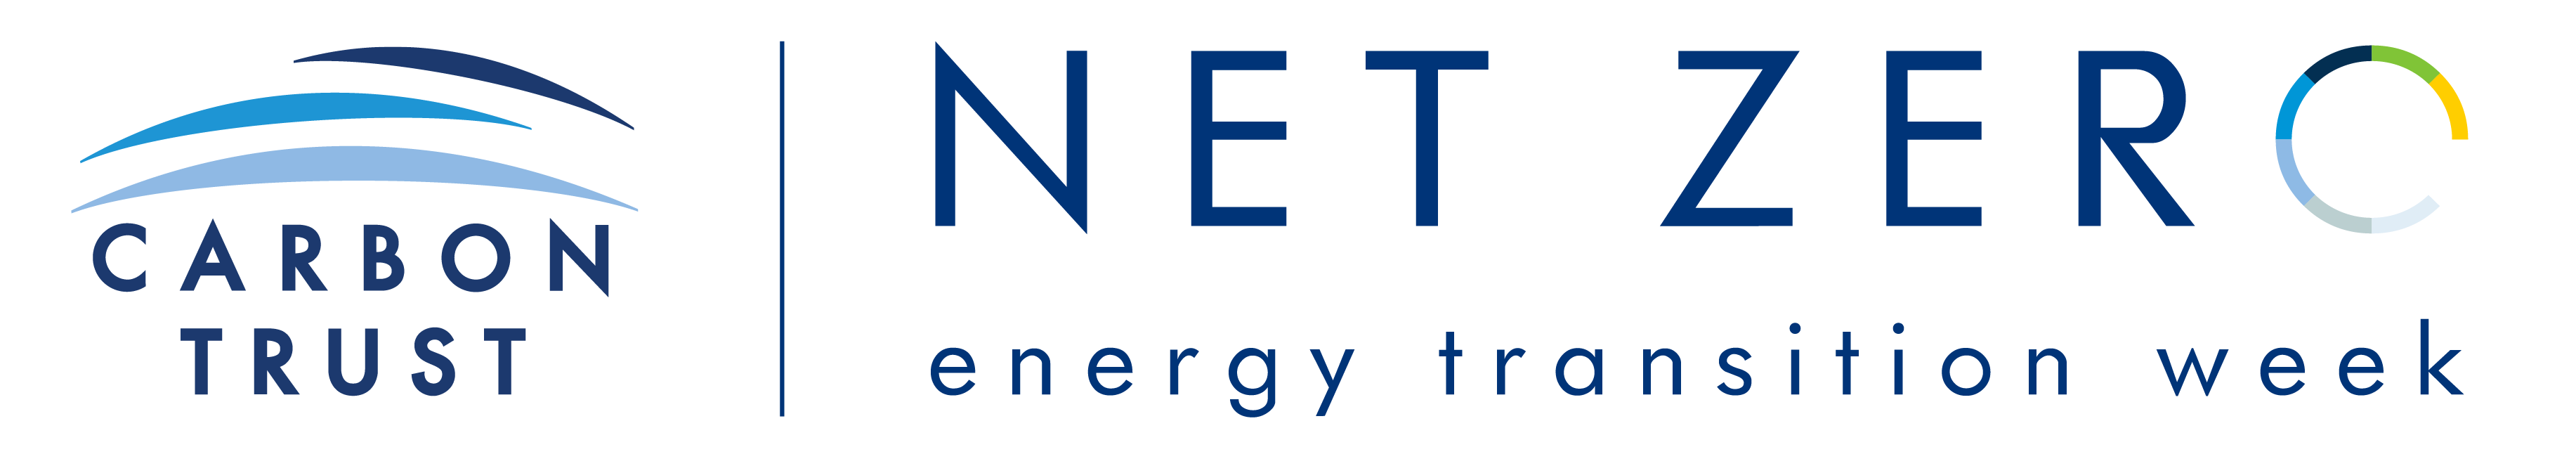 Net Zero Energy Transition